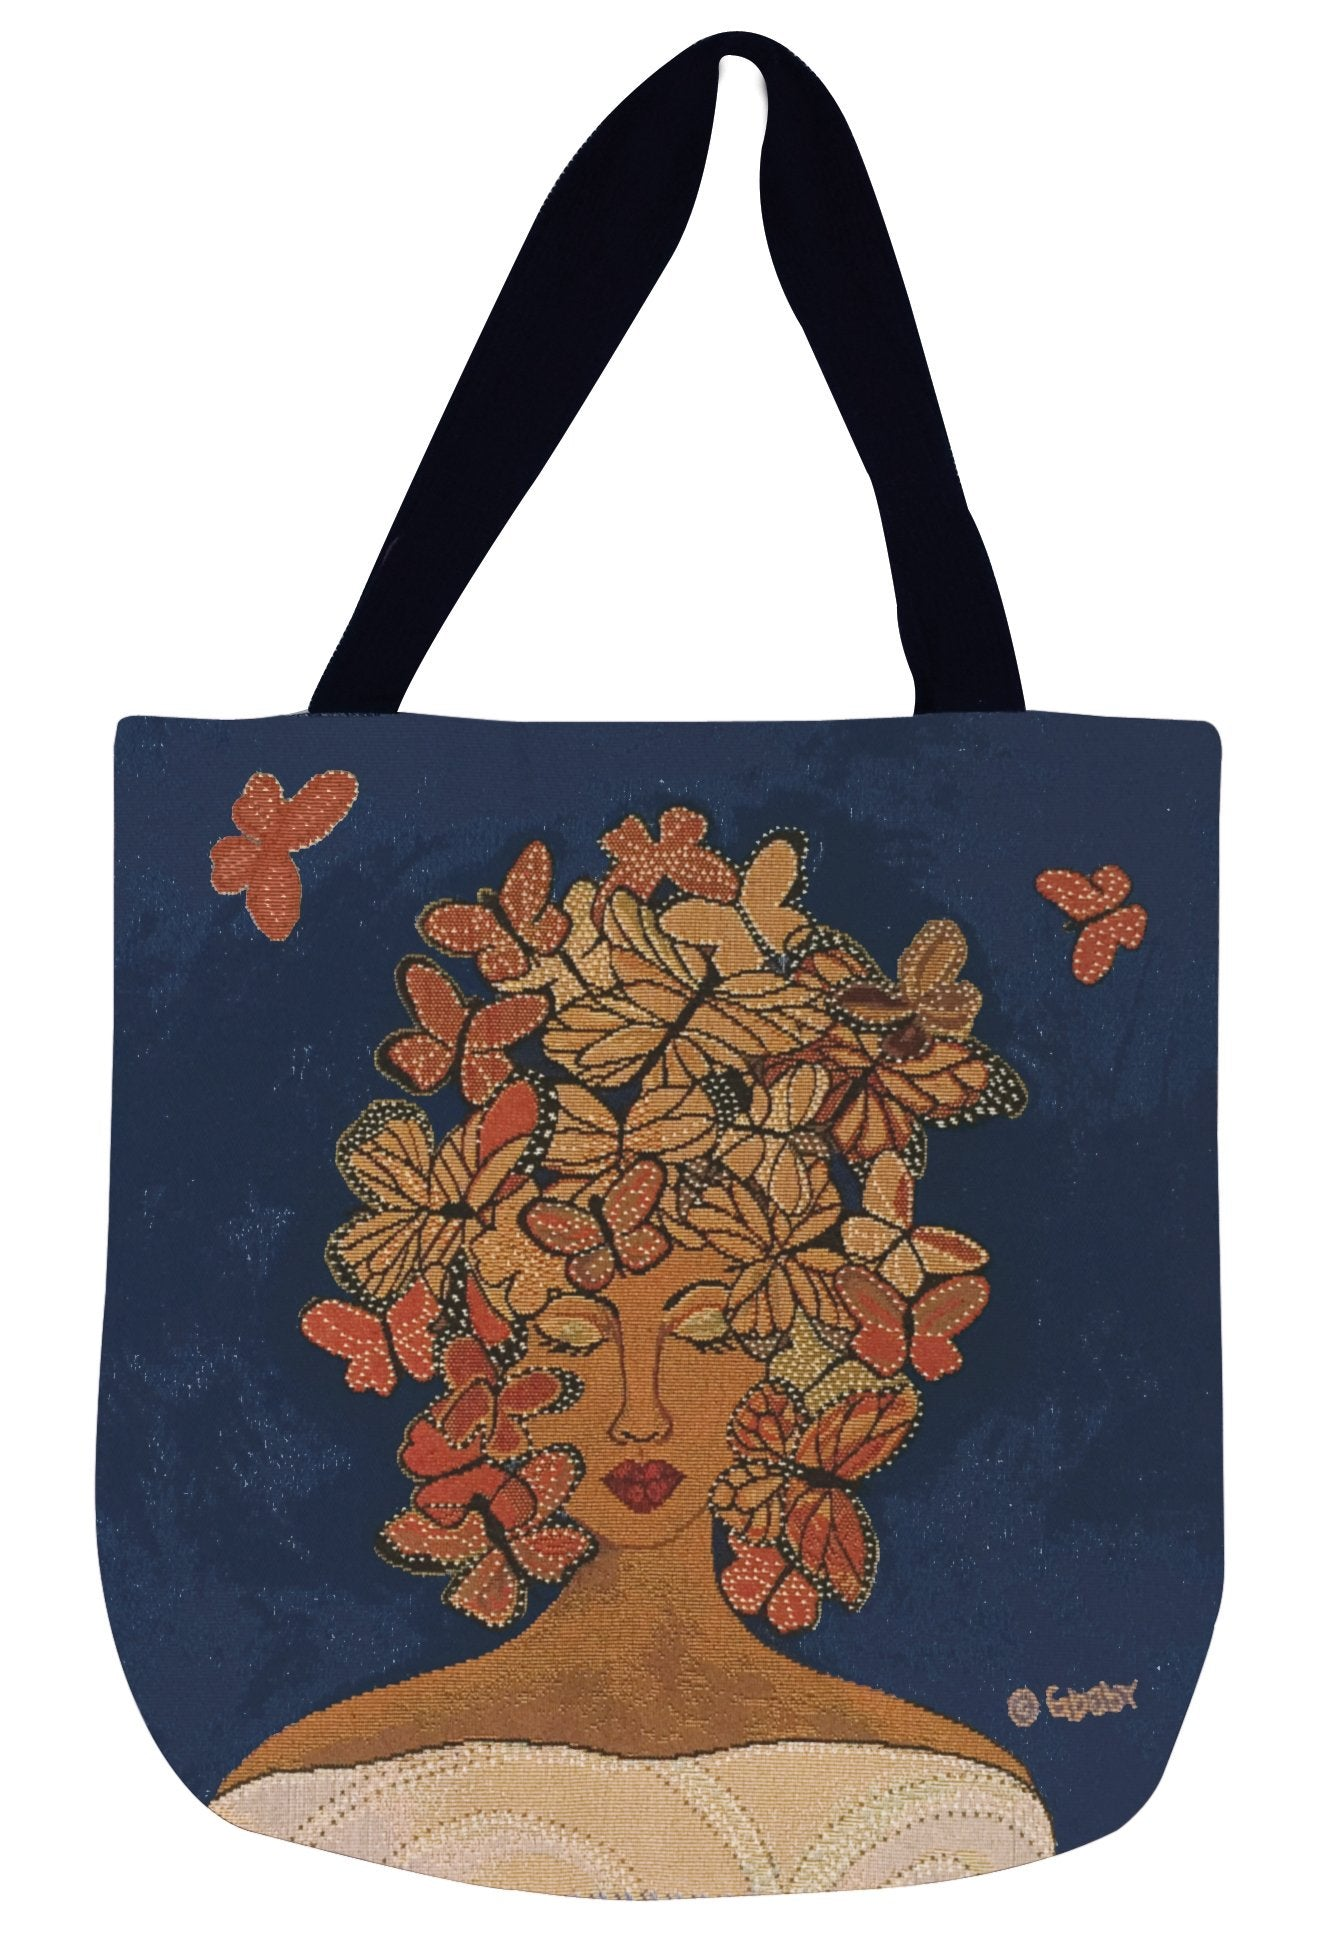 Release, Relax, Renew: African American Woven Tapestry Tote Bag by GBaby